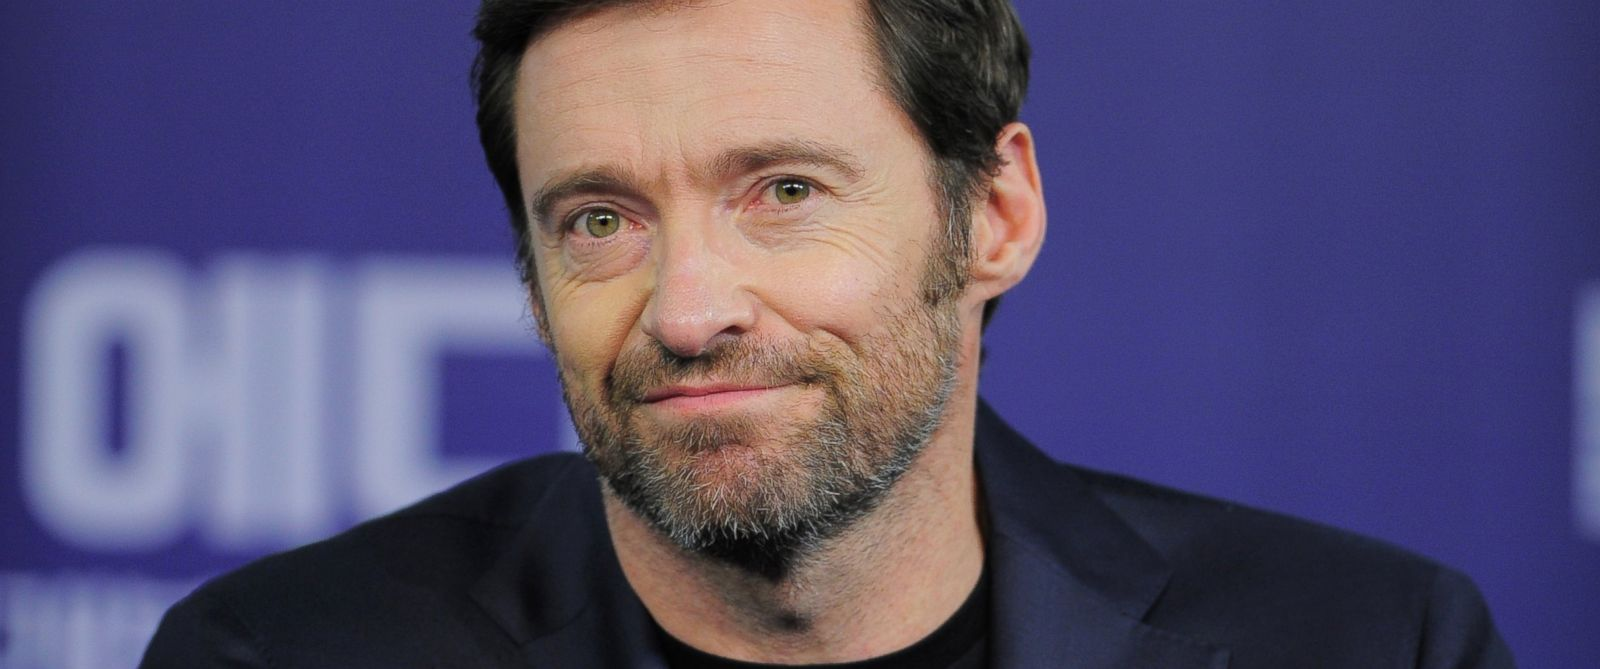 """PHOTO: Hugh Jackman attends the press conference for """"Eddie the Eagle"""" in Seoul, South Korea, March 7, 2016."""